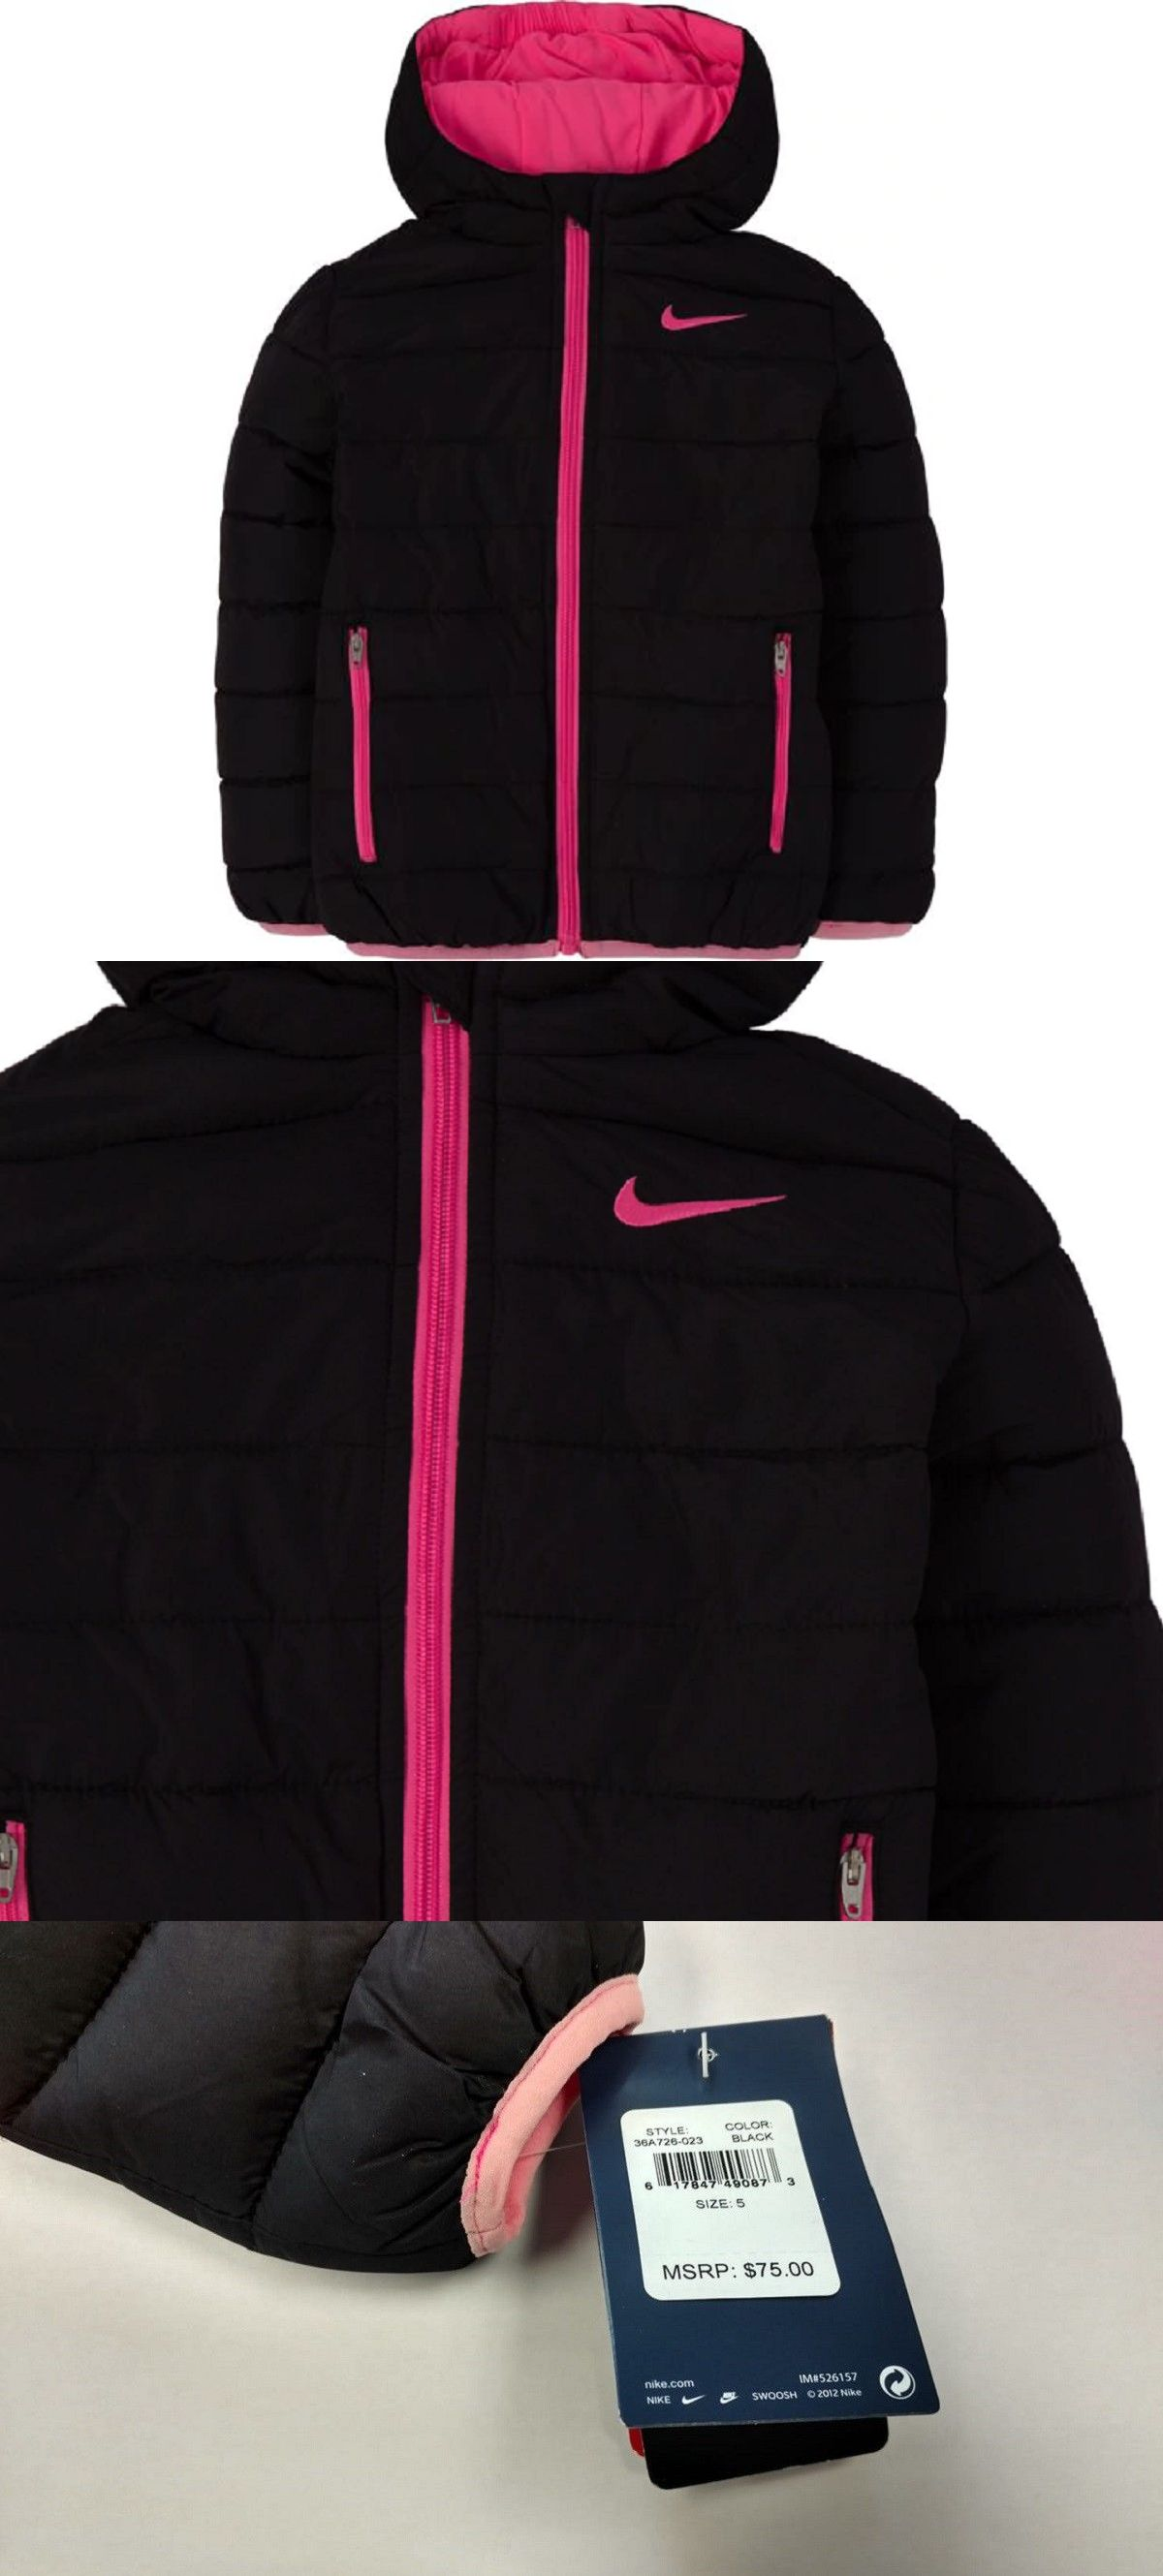 f06ce65ef29a Outerwear 51580  Nike Little Girl S Puffer Jacket Coat Outerwear - Black  Pink - Size